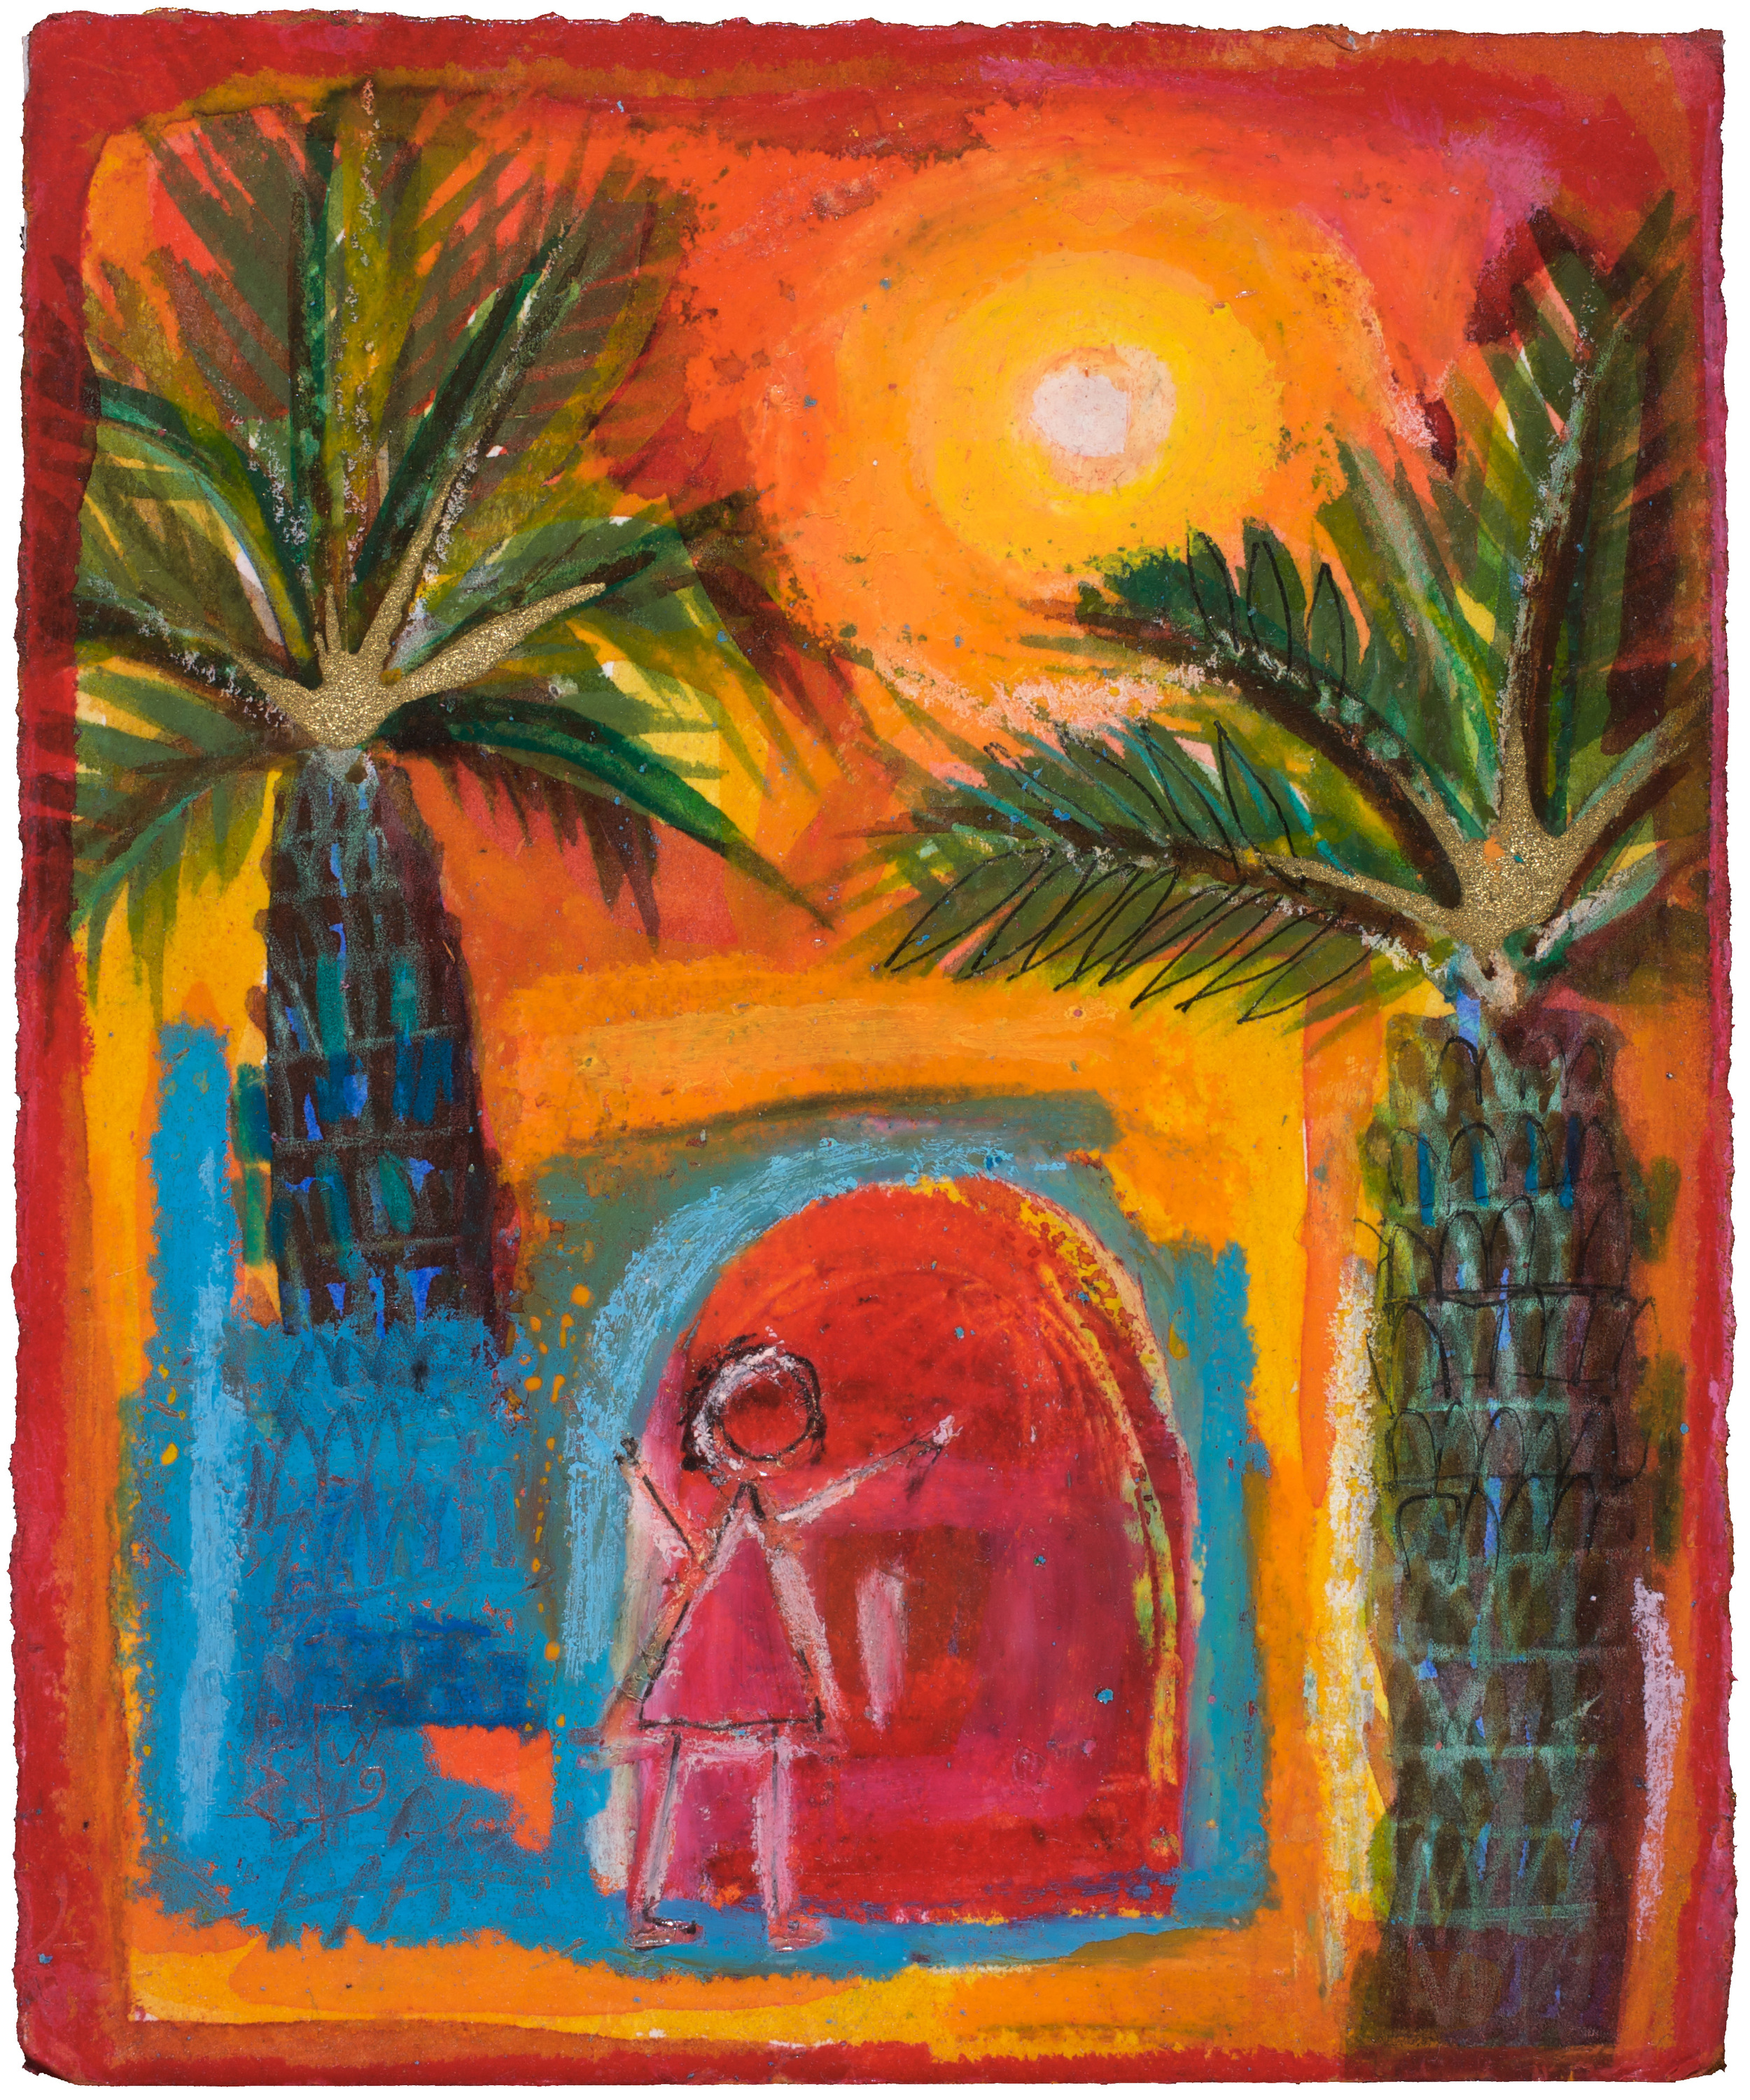 Saadiya  Weeping Palms Stolen Childhoods  Watercolor 17x14cm 2004 Private Collection UK